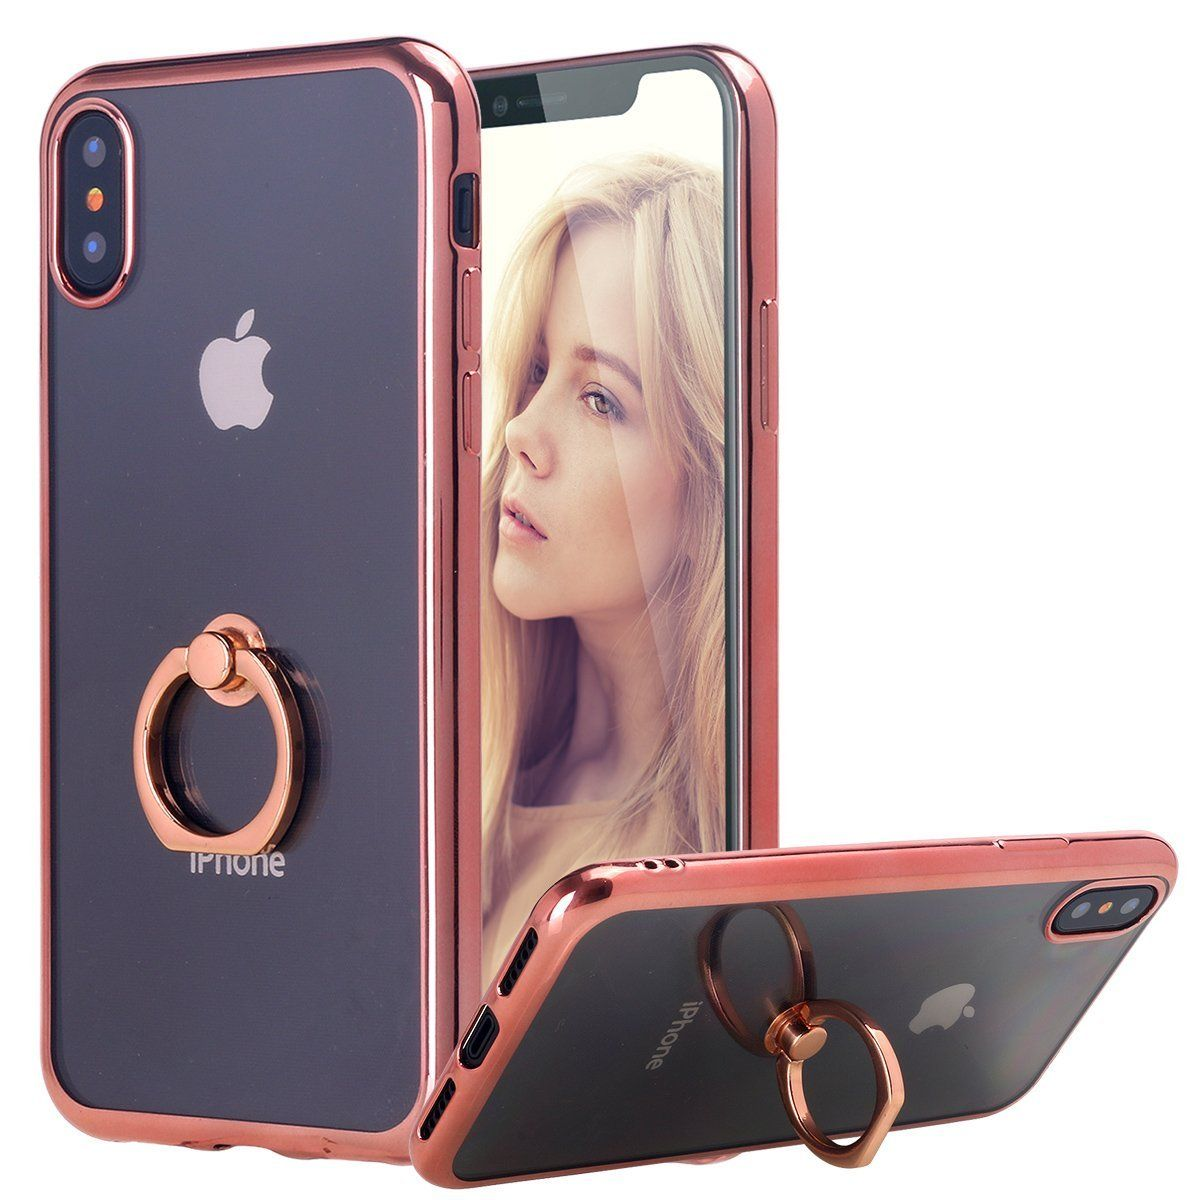 Iphone X Case Thin Clear Luxury Tpu Rose Gold Bumper Case Cover With Built In Ring Grip Holder For Apple Iphone X Rose Gold Iphone 10 Iphone Apple Iphone 4s